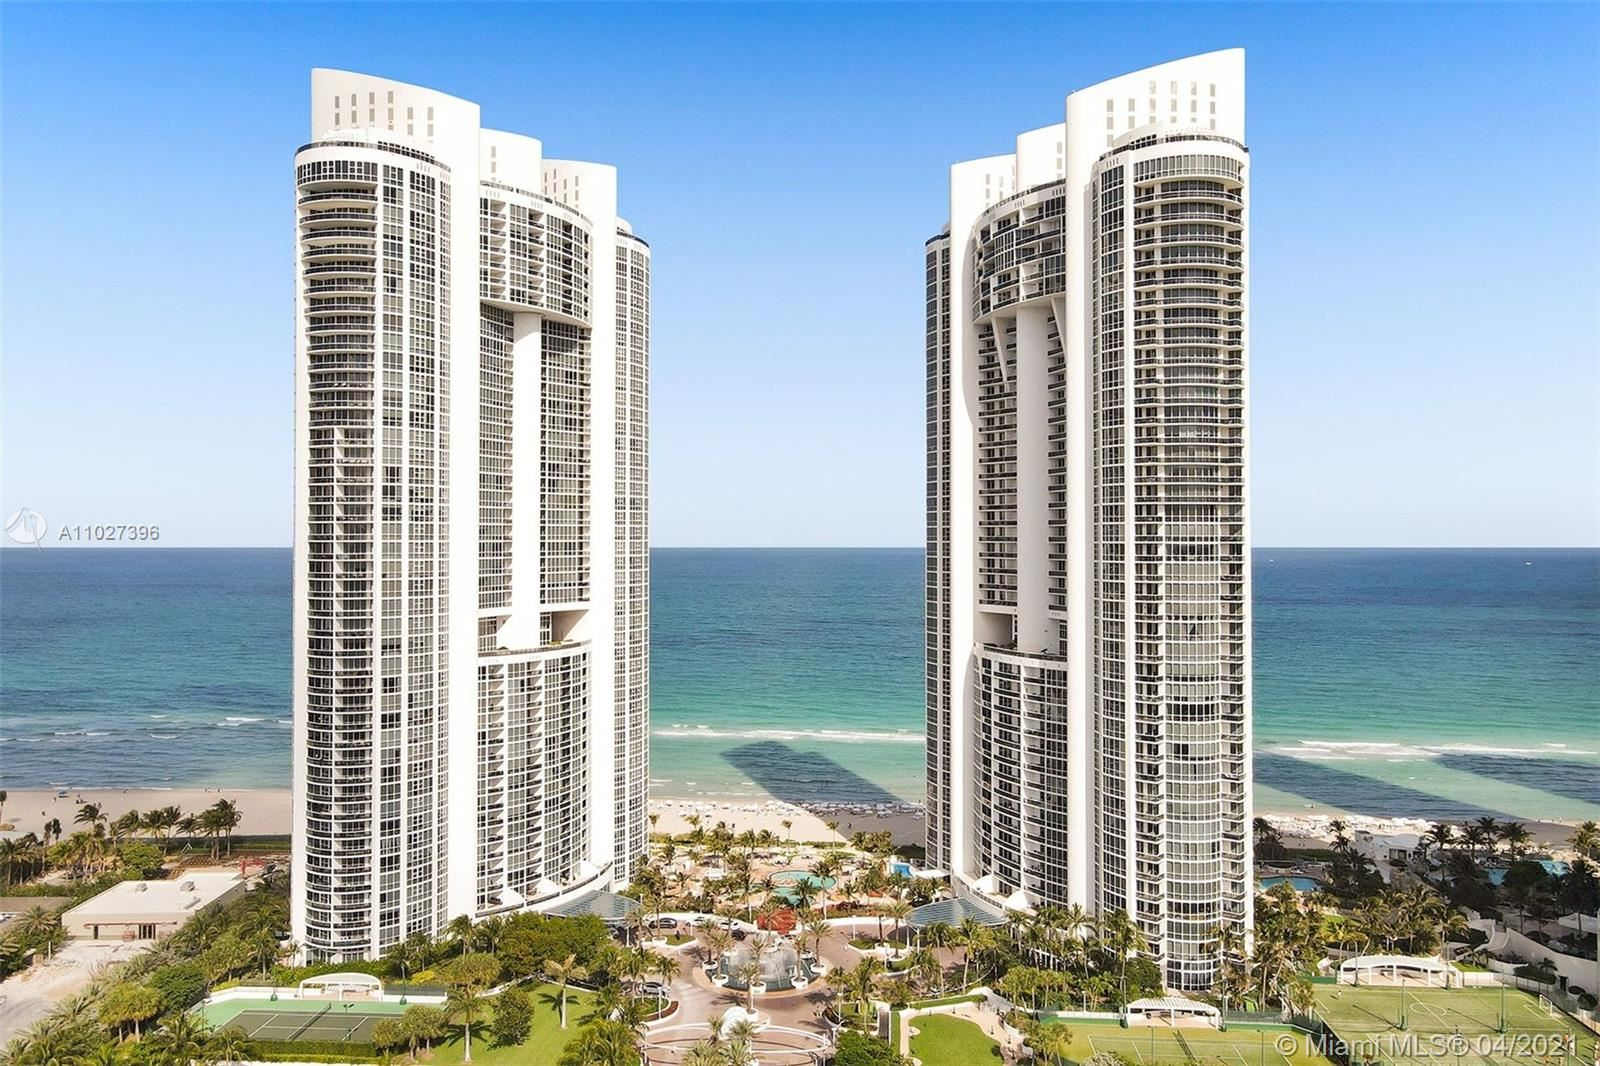 18101 Collins Ave #801, Sunny Isles, FL 33160 - #: A11027396